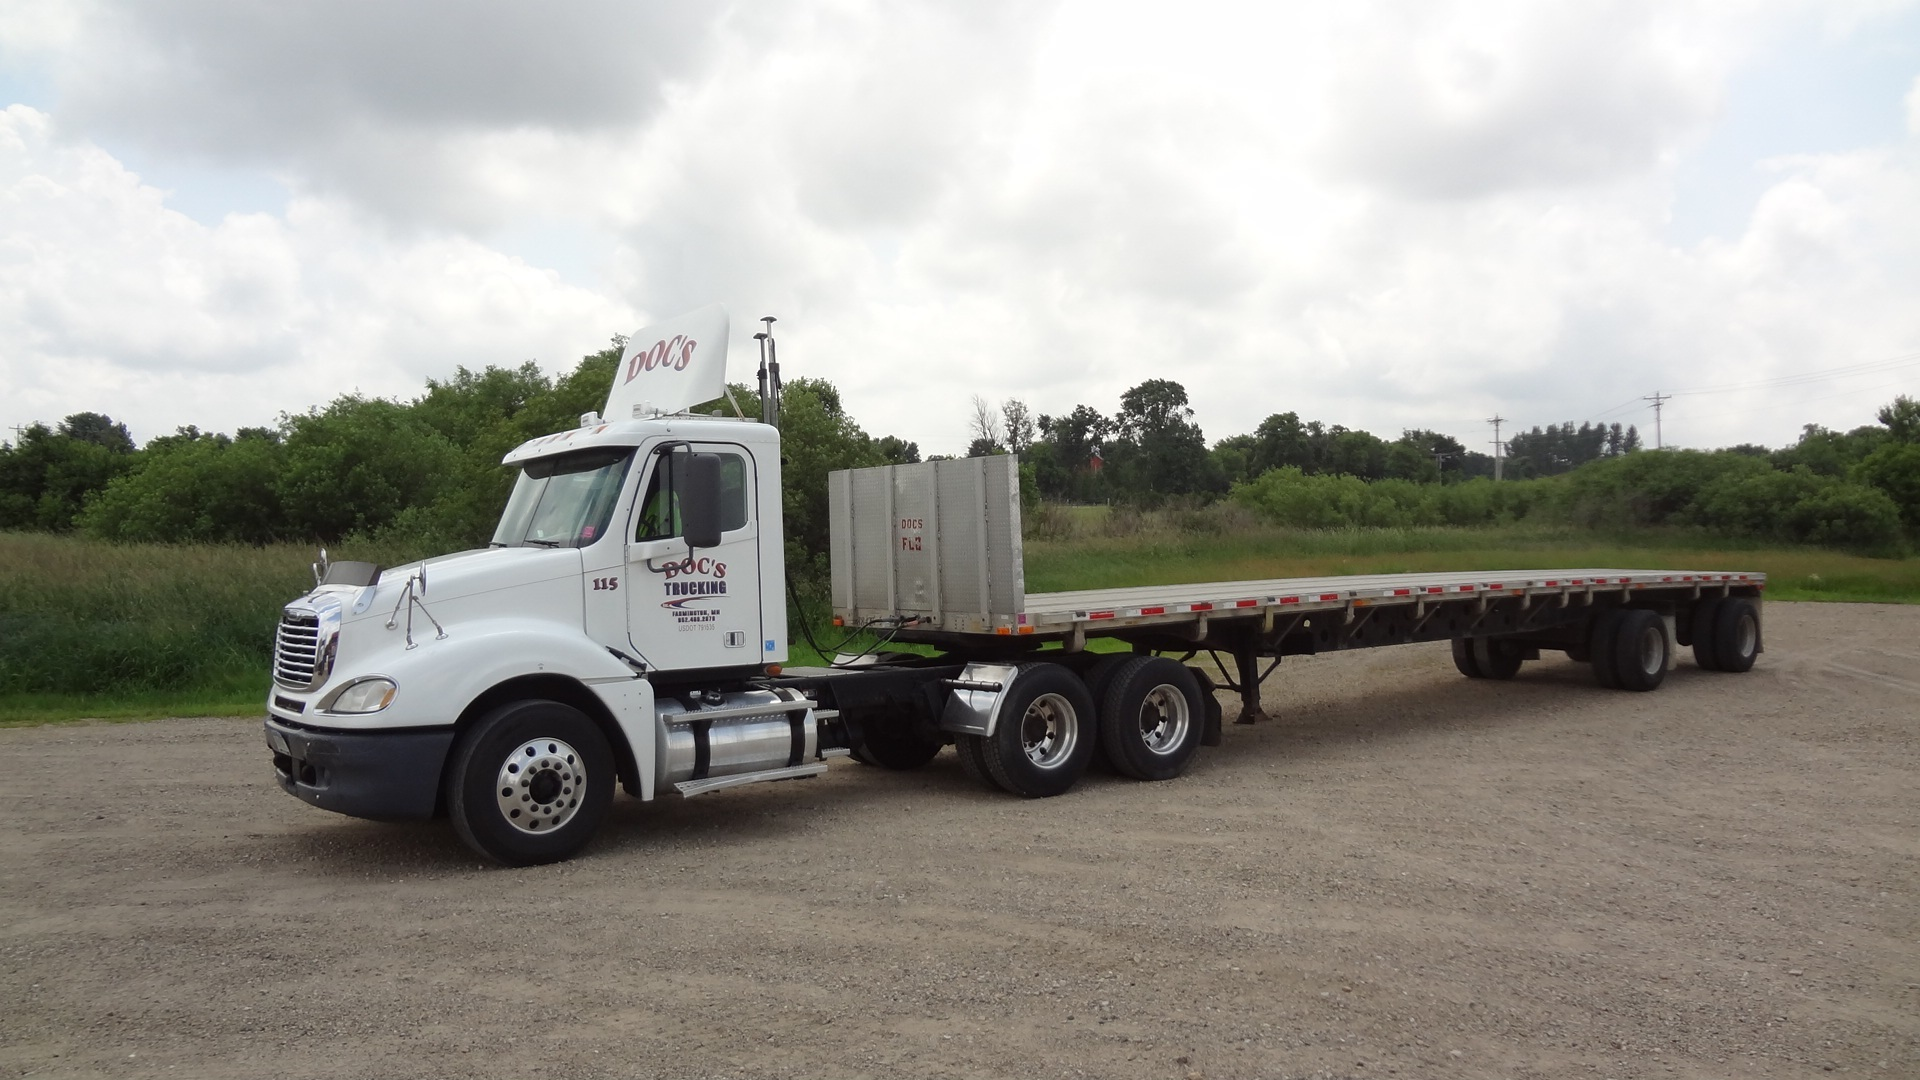 Tractor semi truck with flatbed trailer minnesota